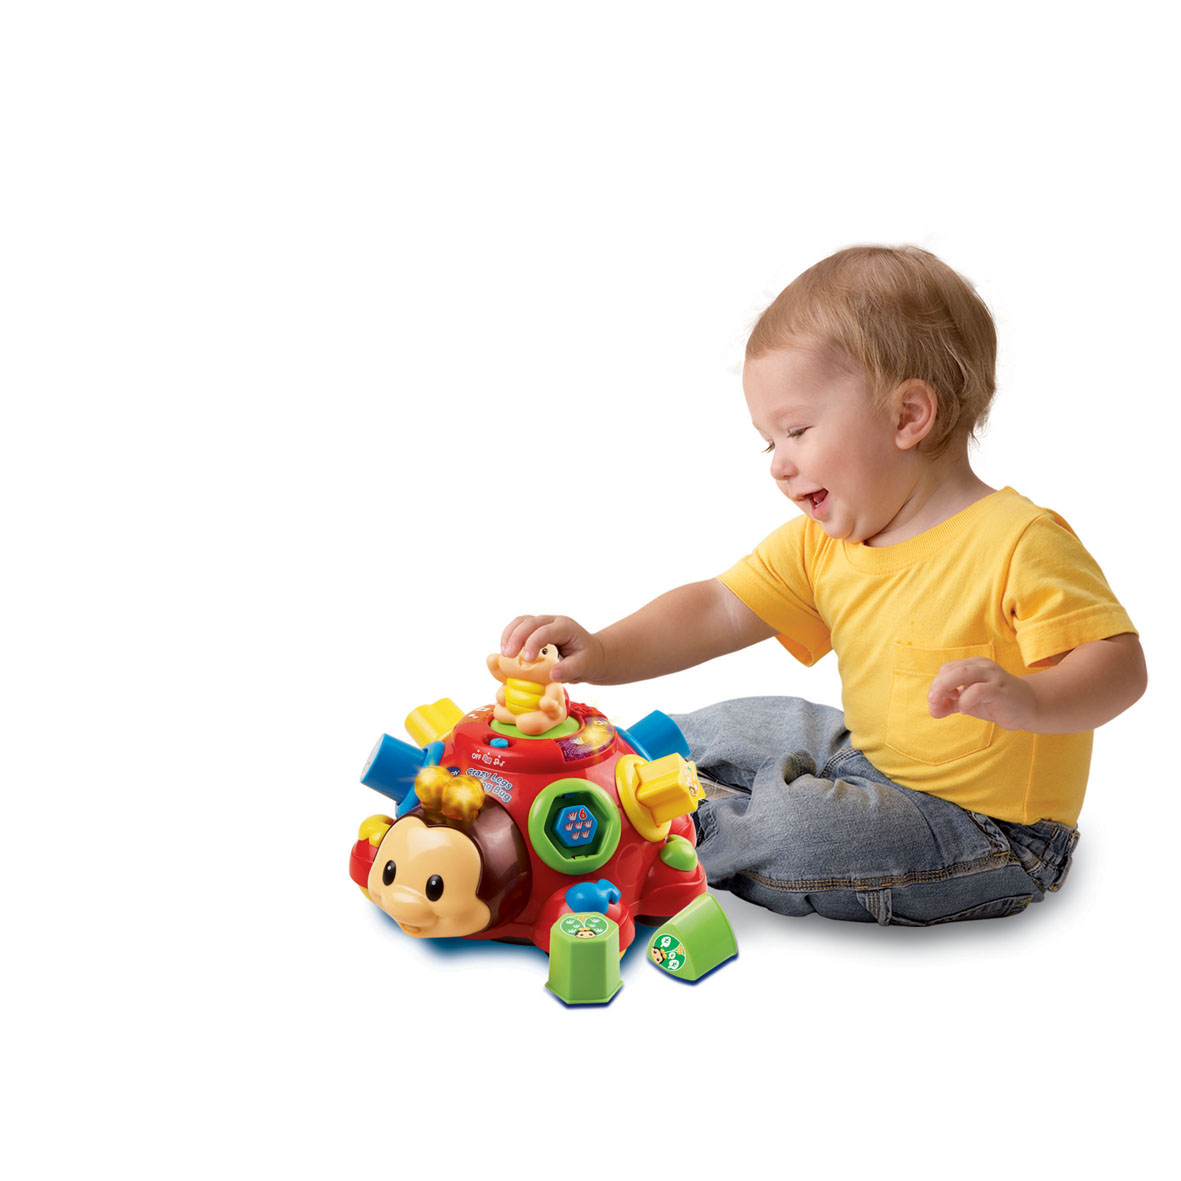 Learning Toys Ages 6 Months : New babies vtech crazy legs learning bug toddler childrens